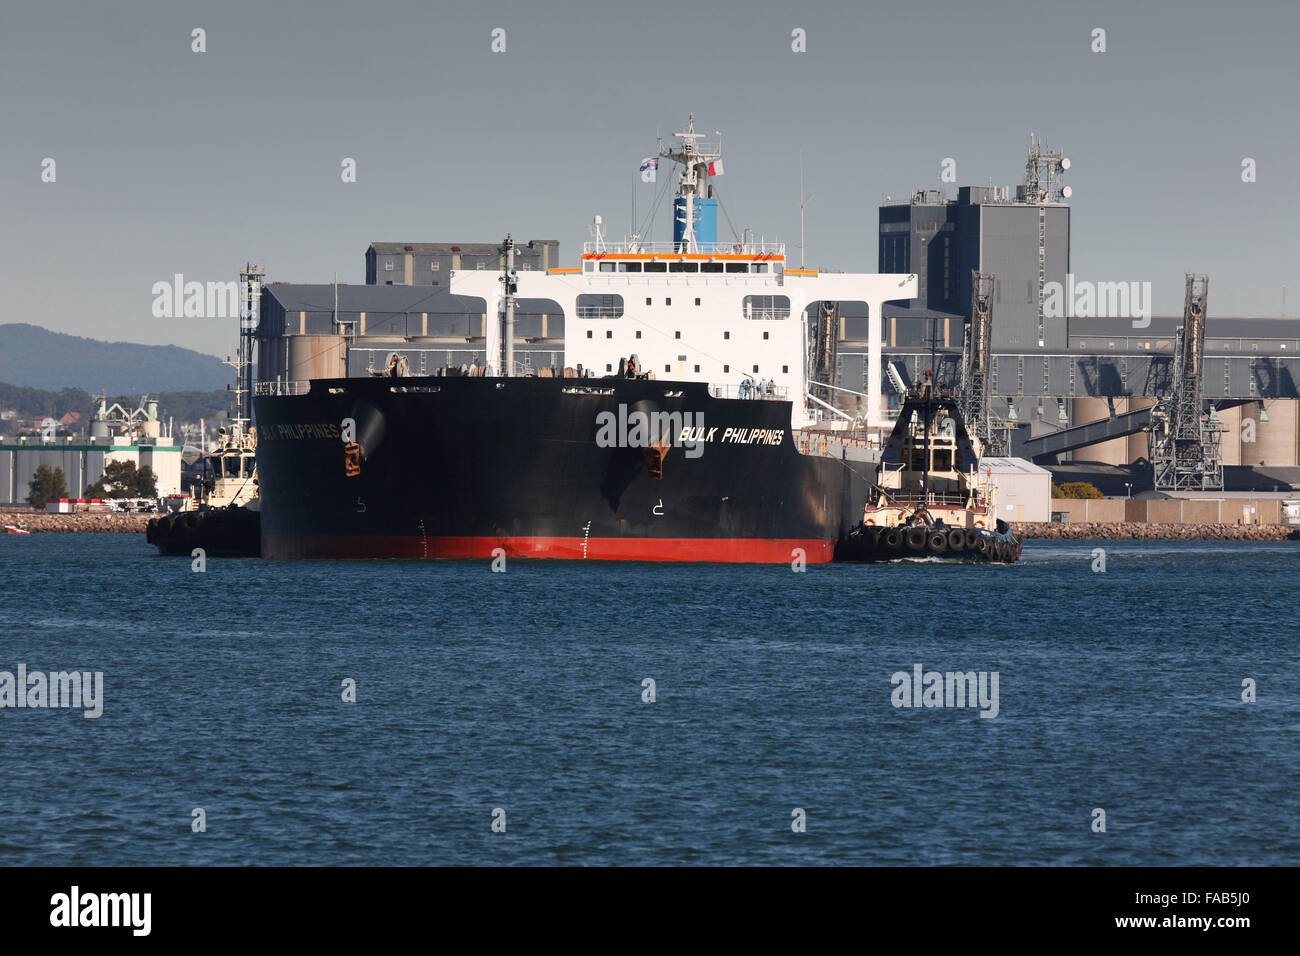 The bulkcarrier - Bulk Philippines departing with a full load of export coal from the Hunter Valley coal mines Newcastle - Stock Image